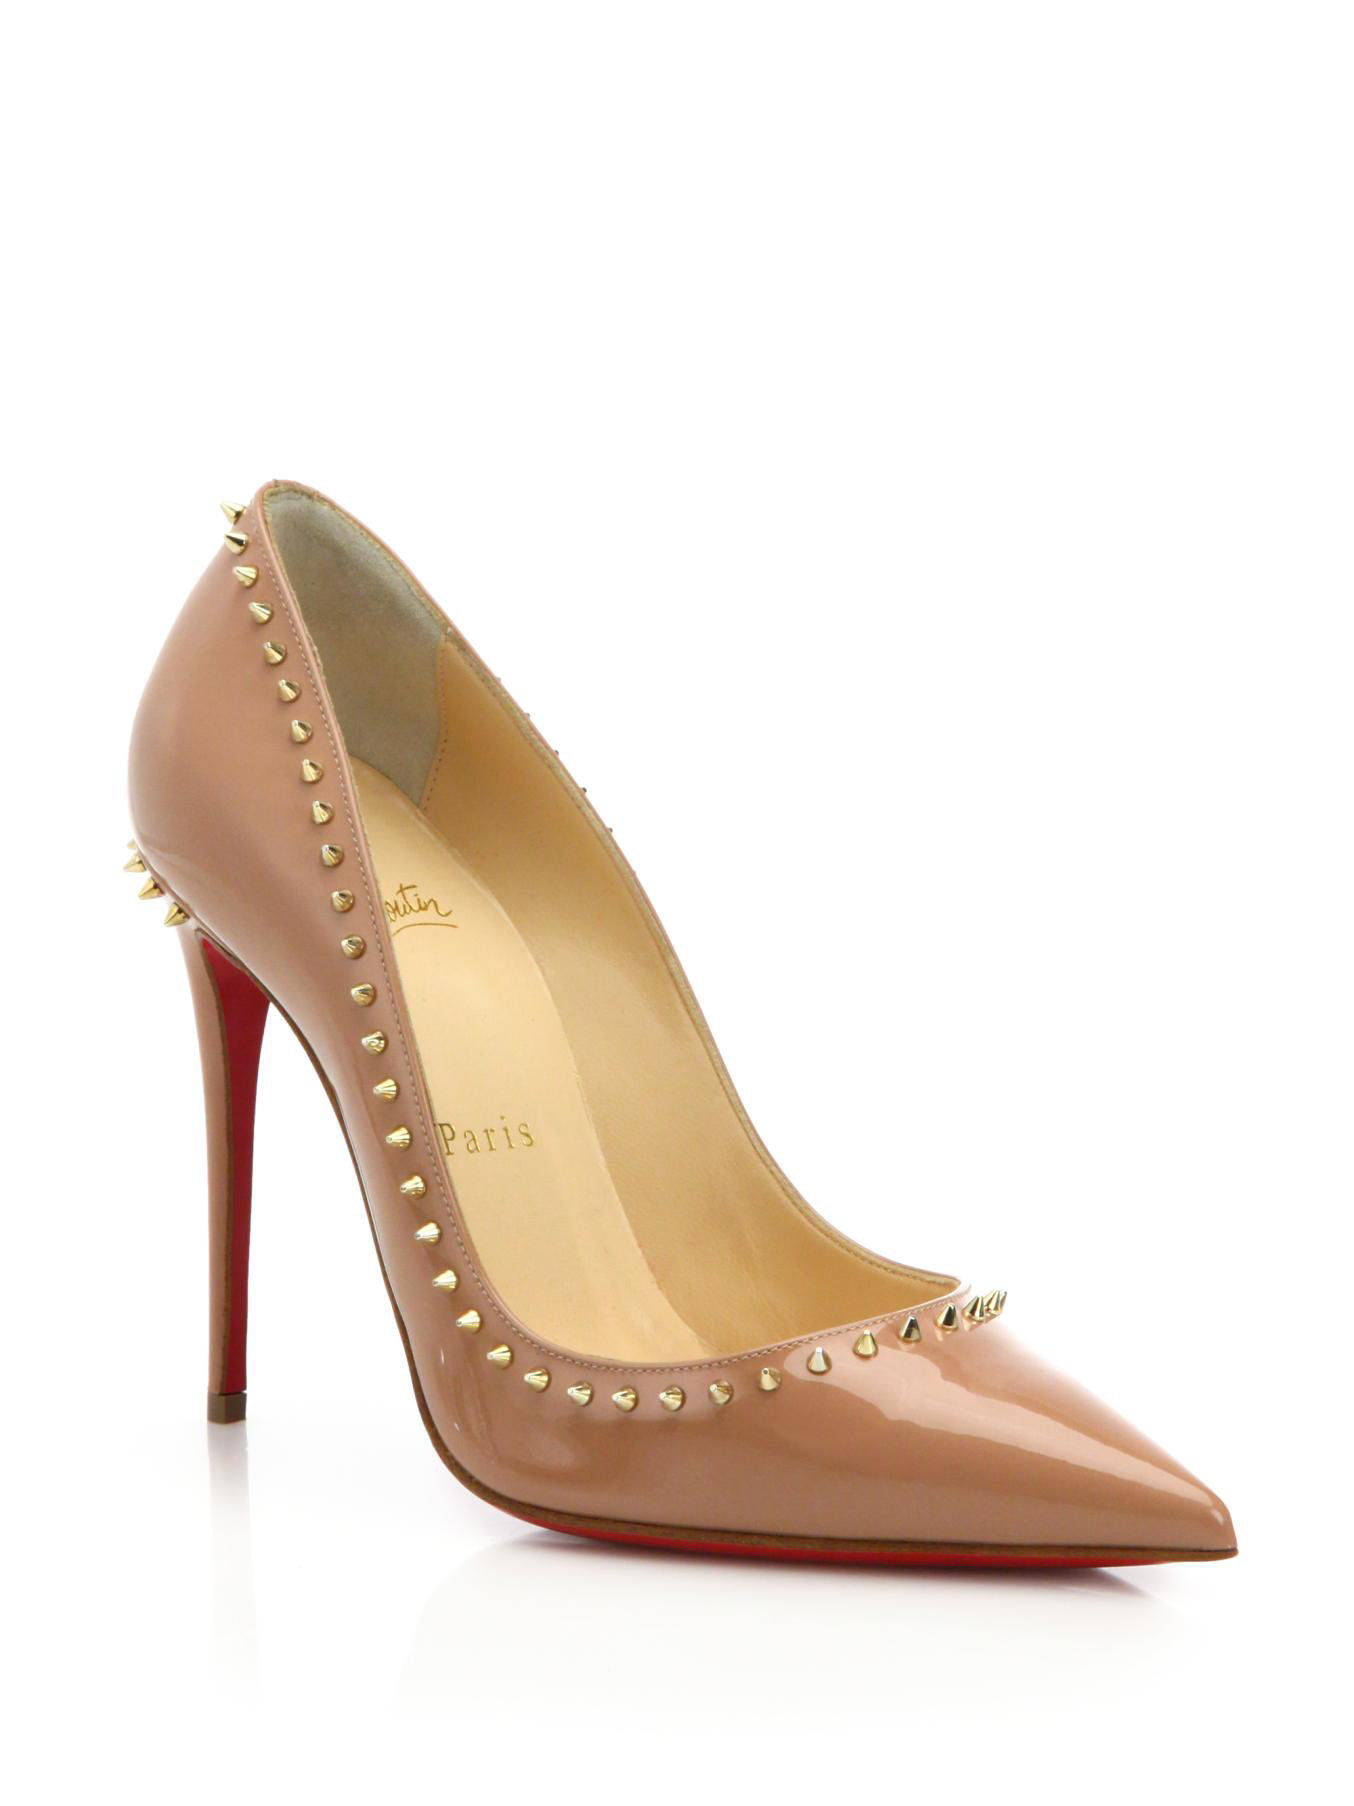 f8272f28d1cb Lyst - Christian Louboutin Anjalina Spiked Patent Leather Pumps in ...